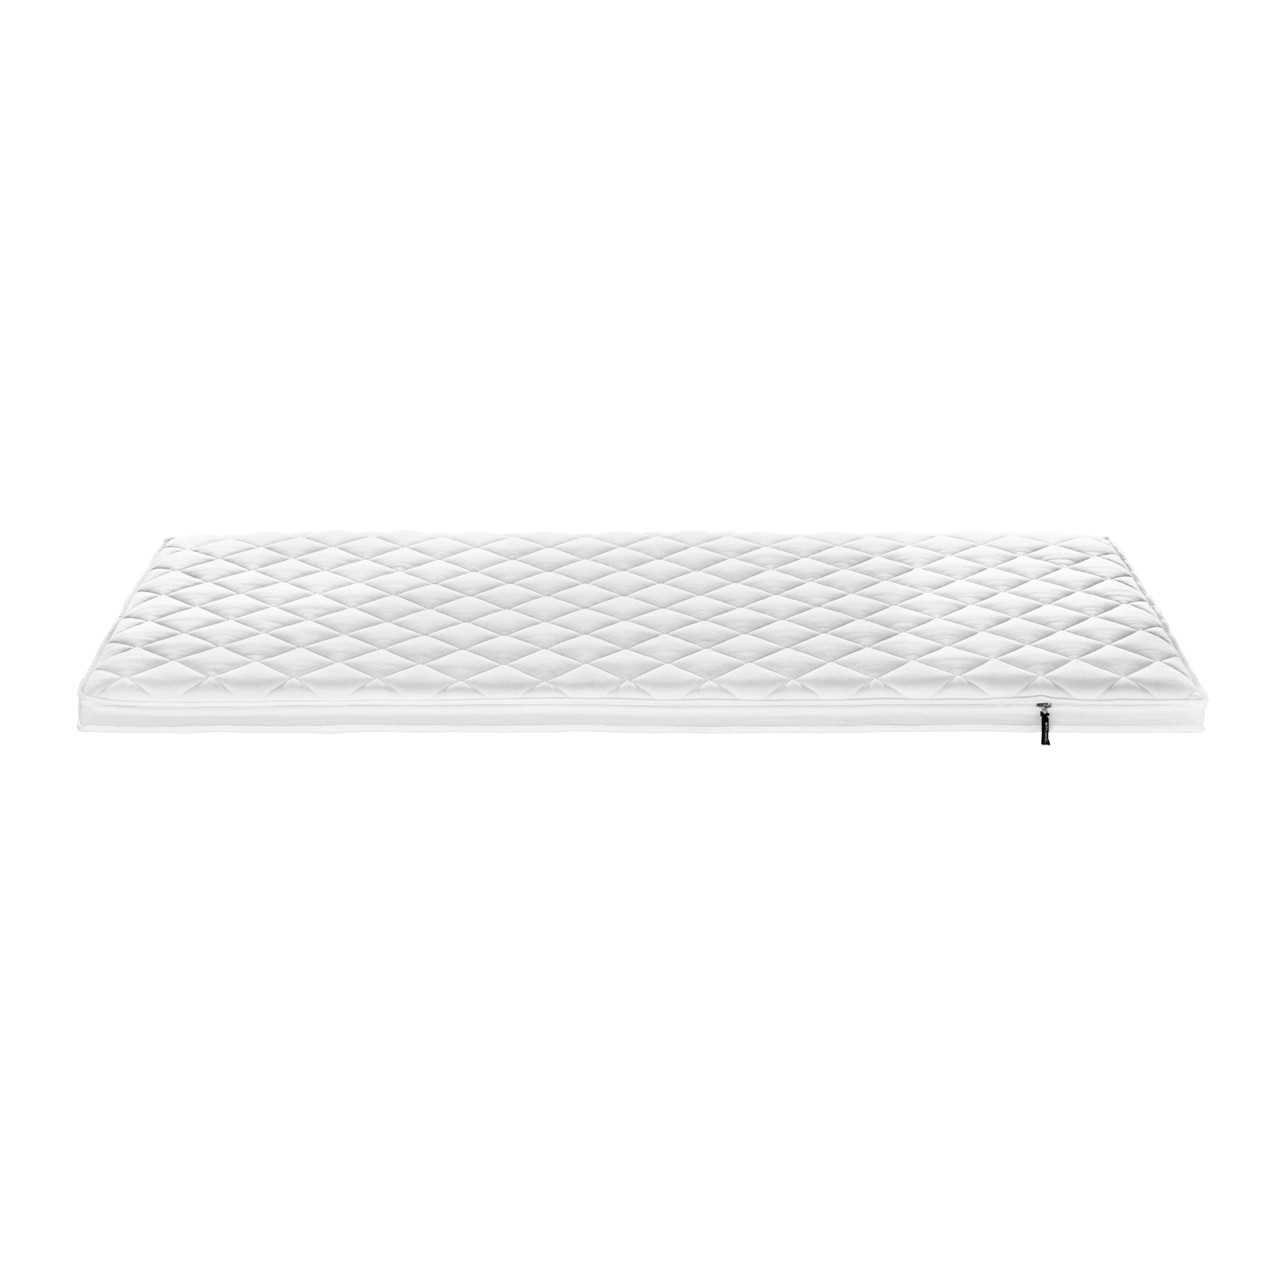 Kaltschaum Topper 140x200 Rummel Aquapur Kaltschaum Topper My 90 A